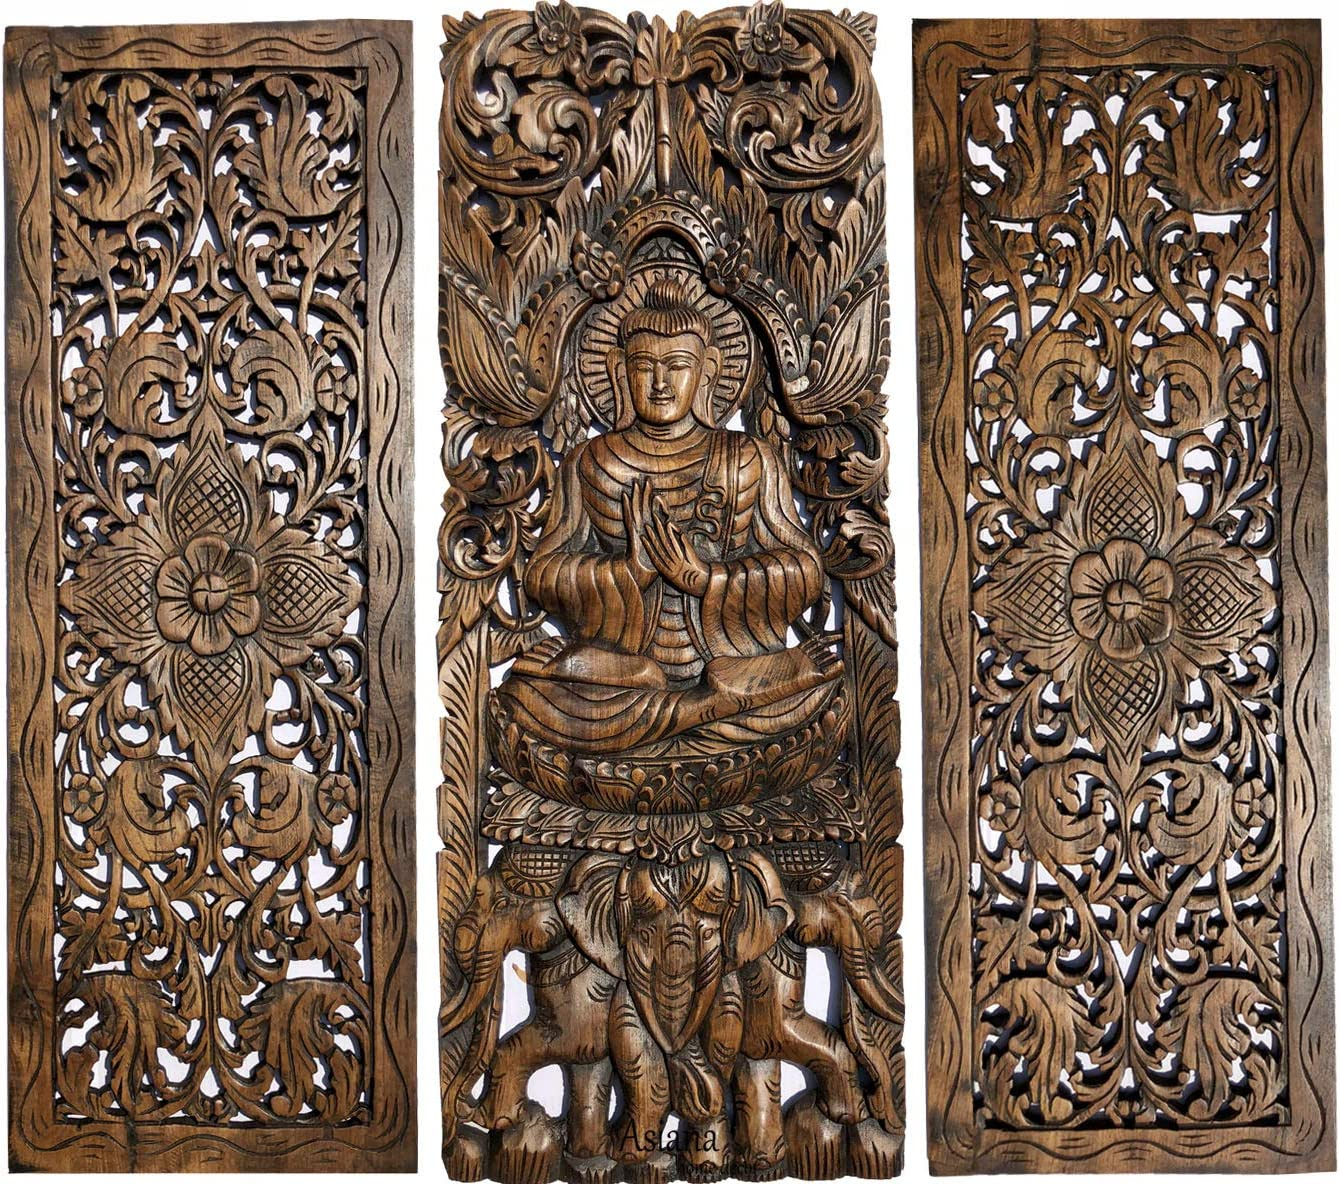 "Buddha and Floral Carved Wood Wall Decor Panels. Asian Home Decor in Brown Finish 35.5""x13.5 Each, Set of 3 Pcs"